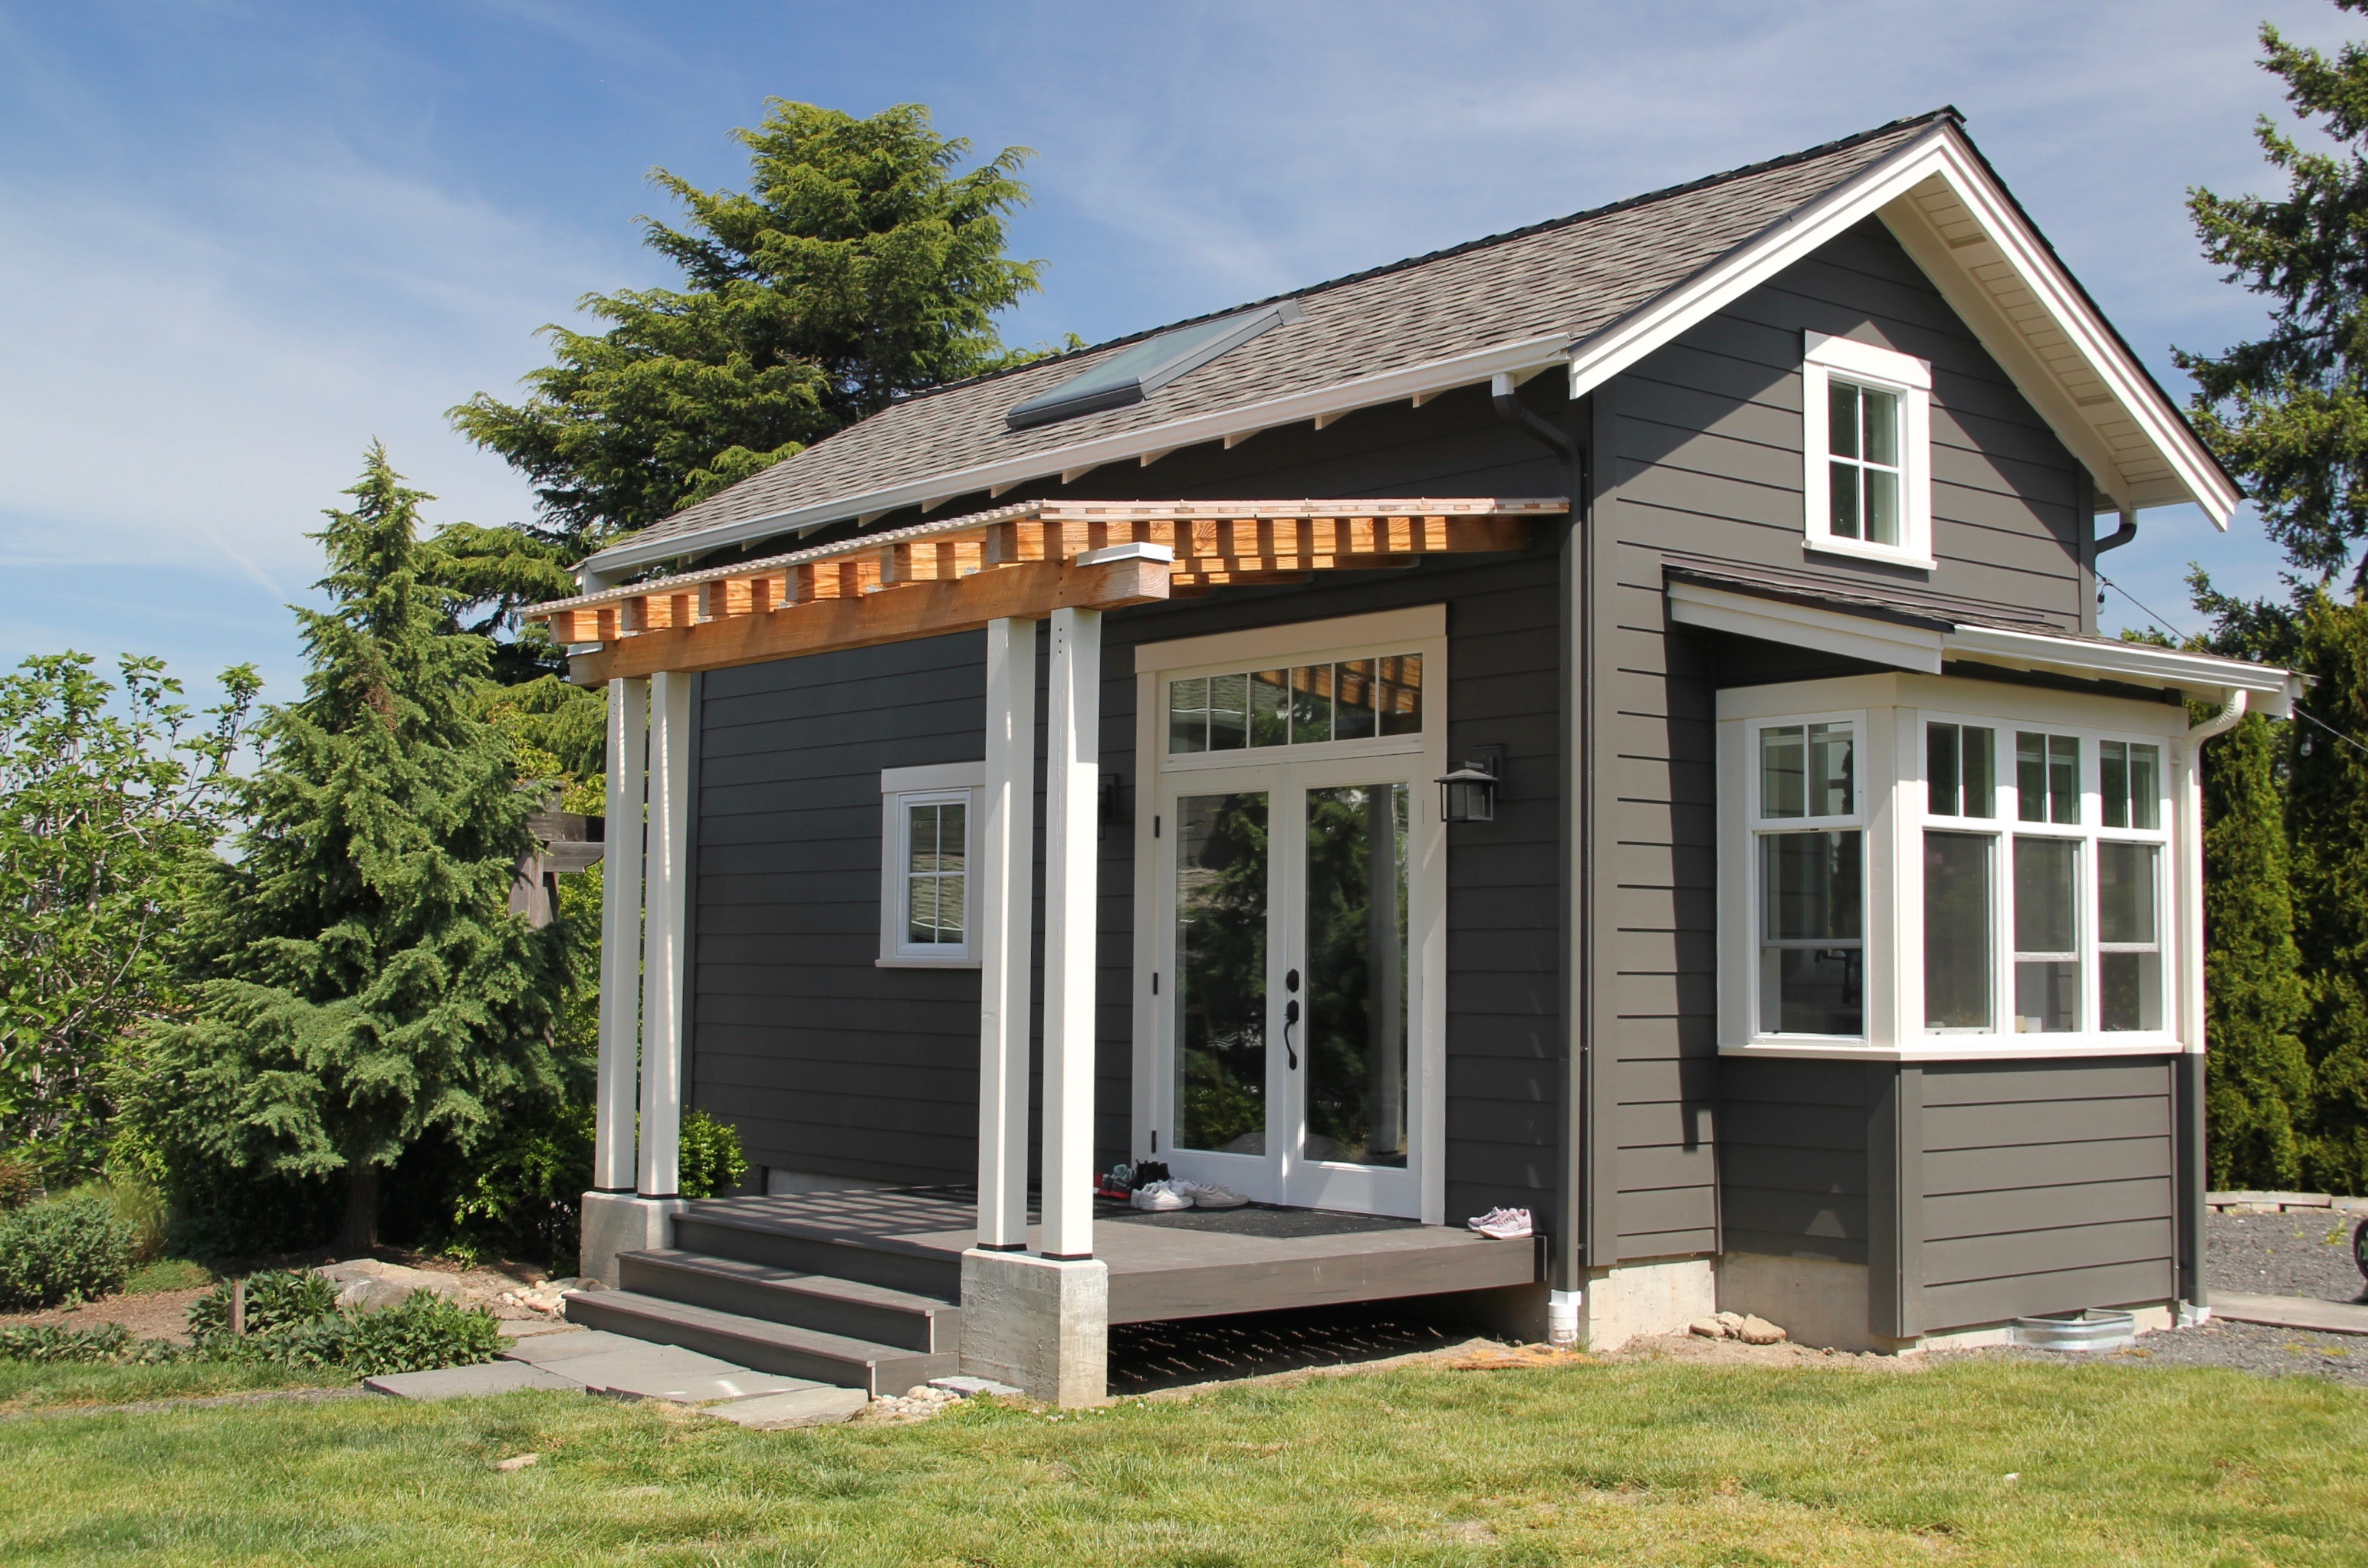 Lakeview Tiny House DADU-01